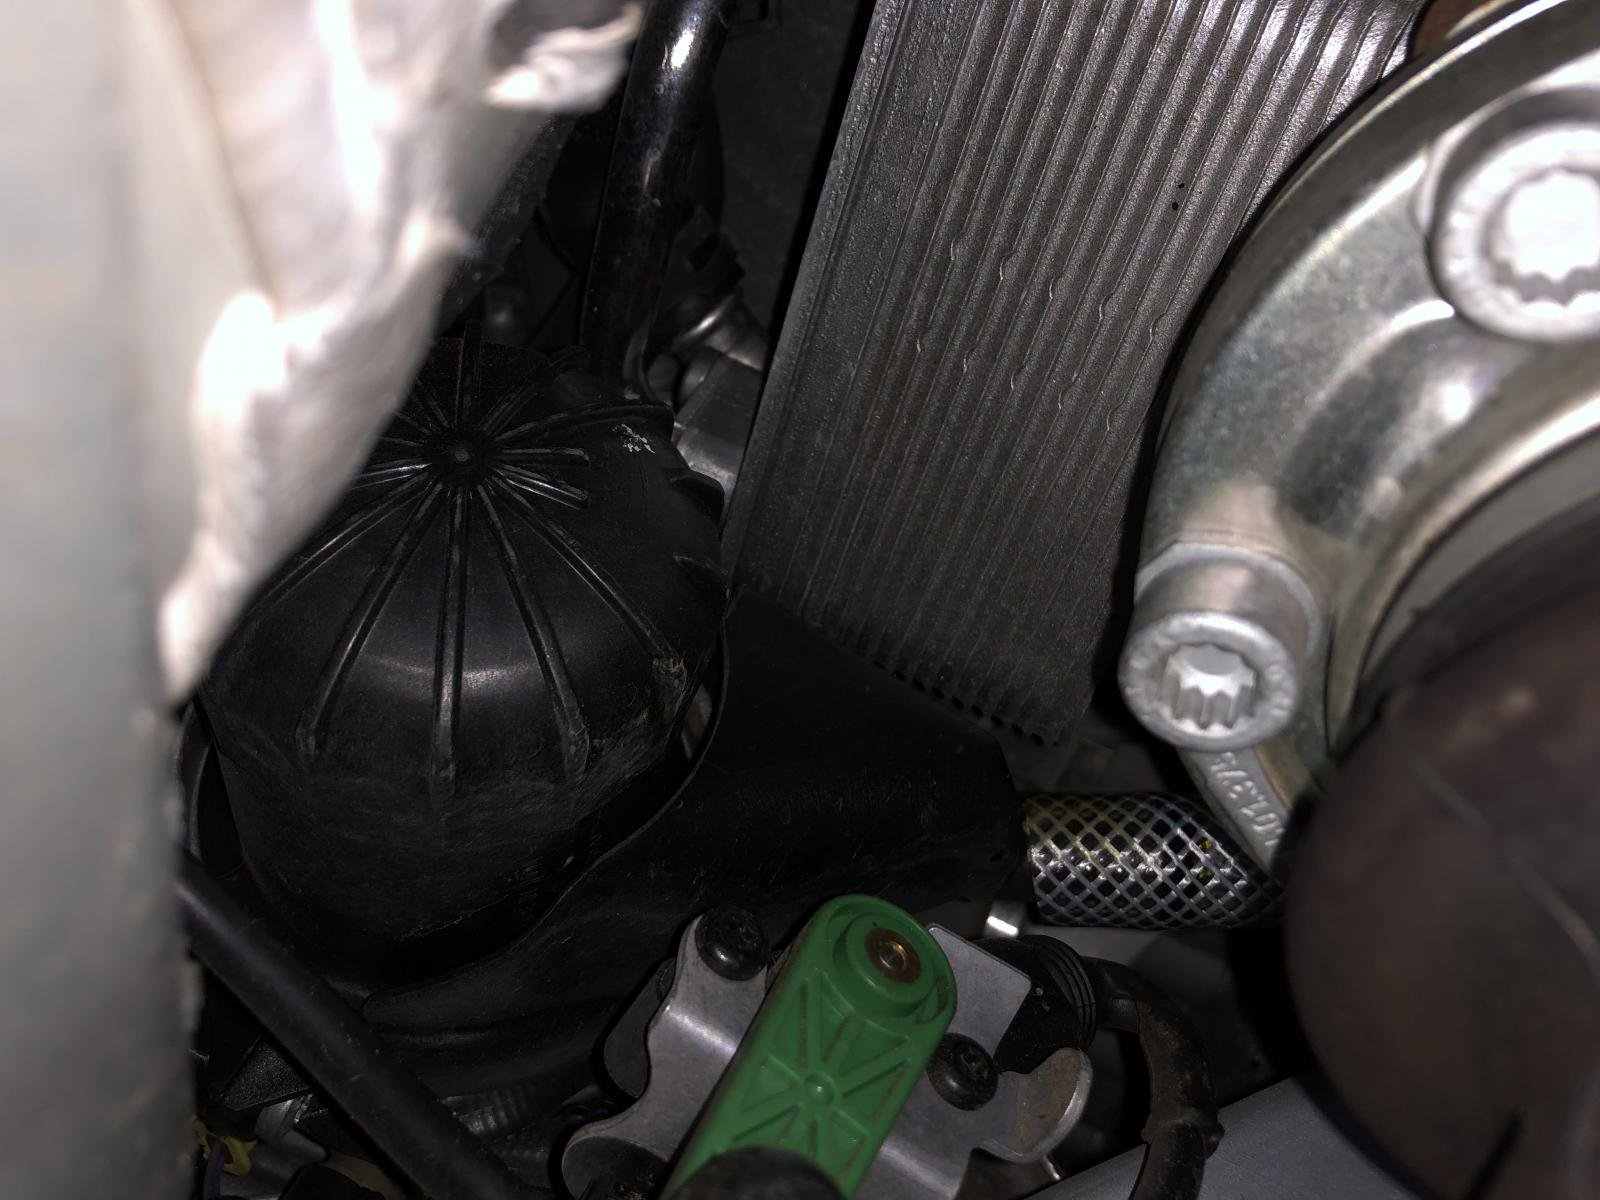 Dan's version of oil change with pictures-sogdujaiqoeeahvpeazwtg.jpg